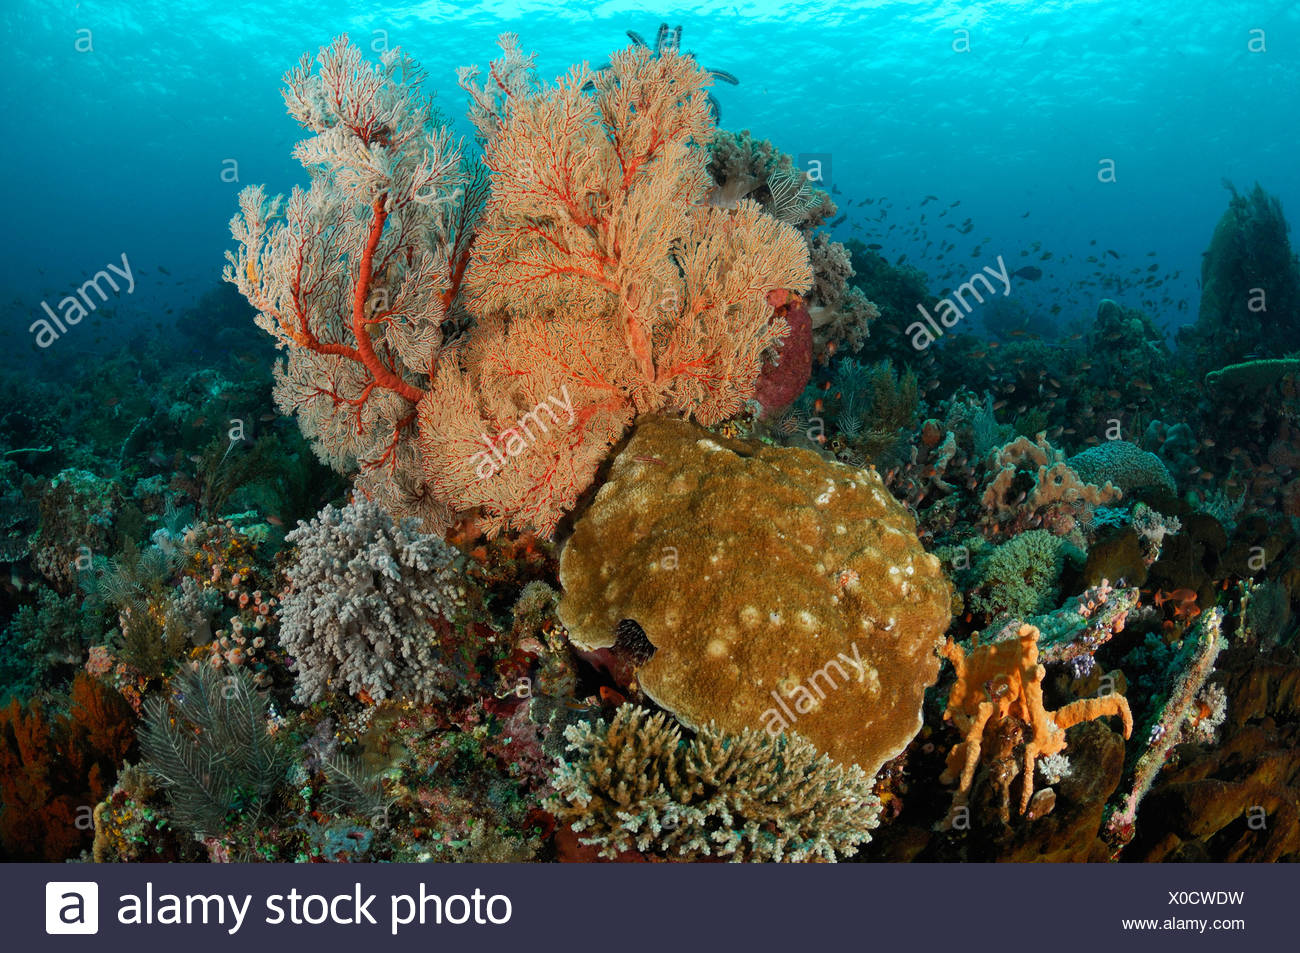 Colorful Coral Reef, Komodo, Indonesia - Stock Image